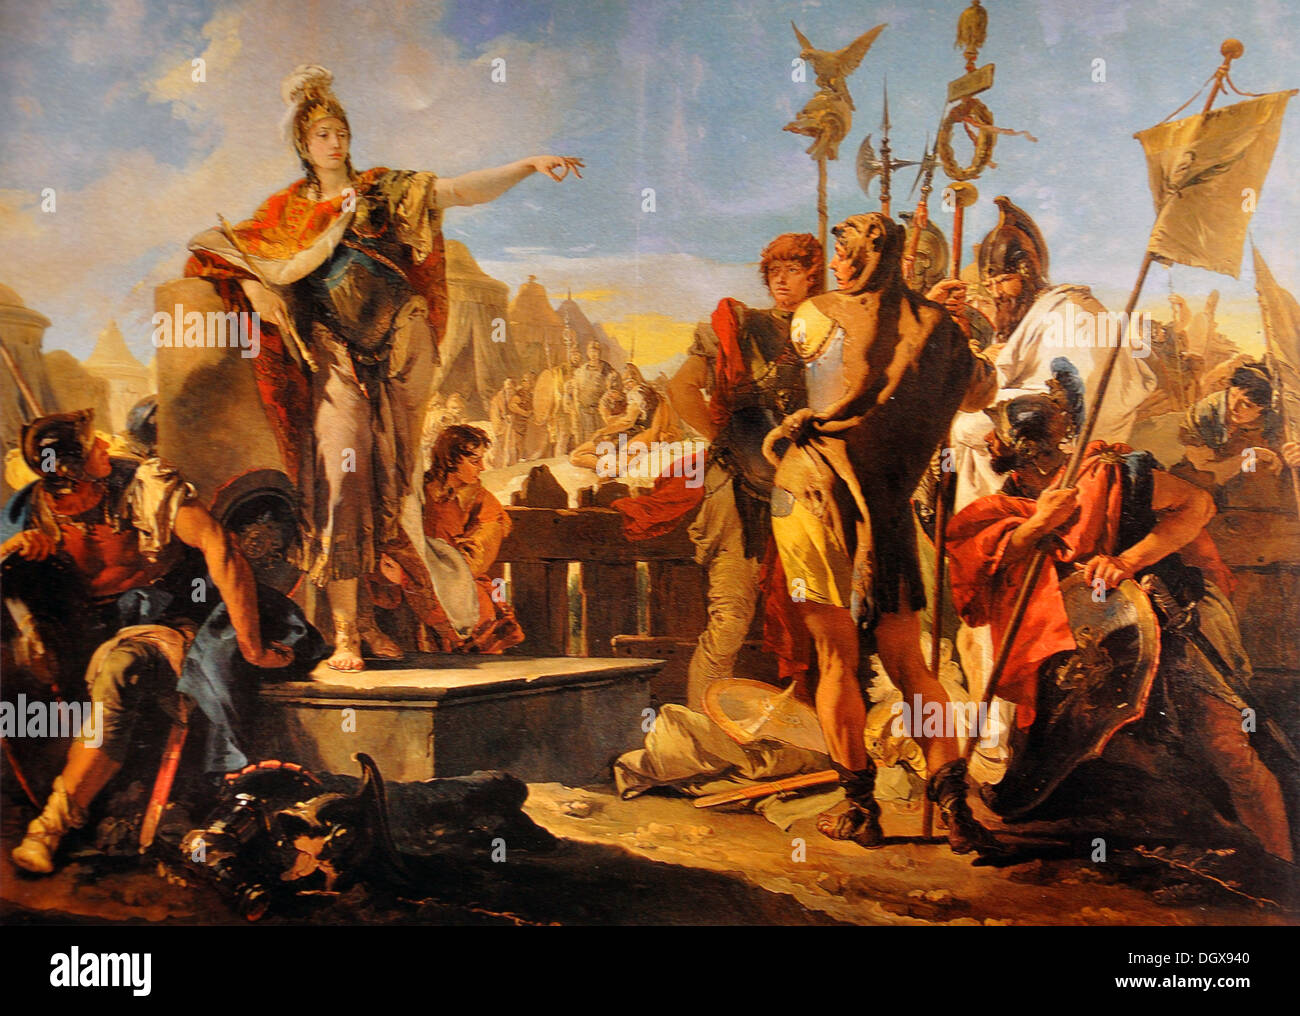 Queen Zenobia Addressing Her Soldiers - by Giovanni Battista Tiepolo, 1730